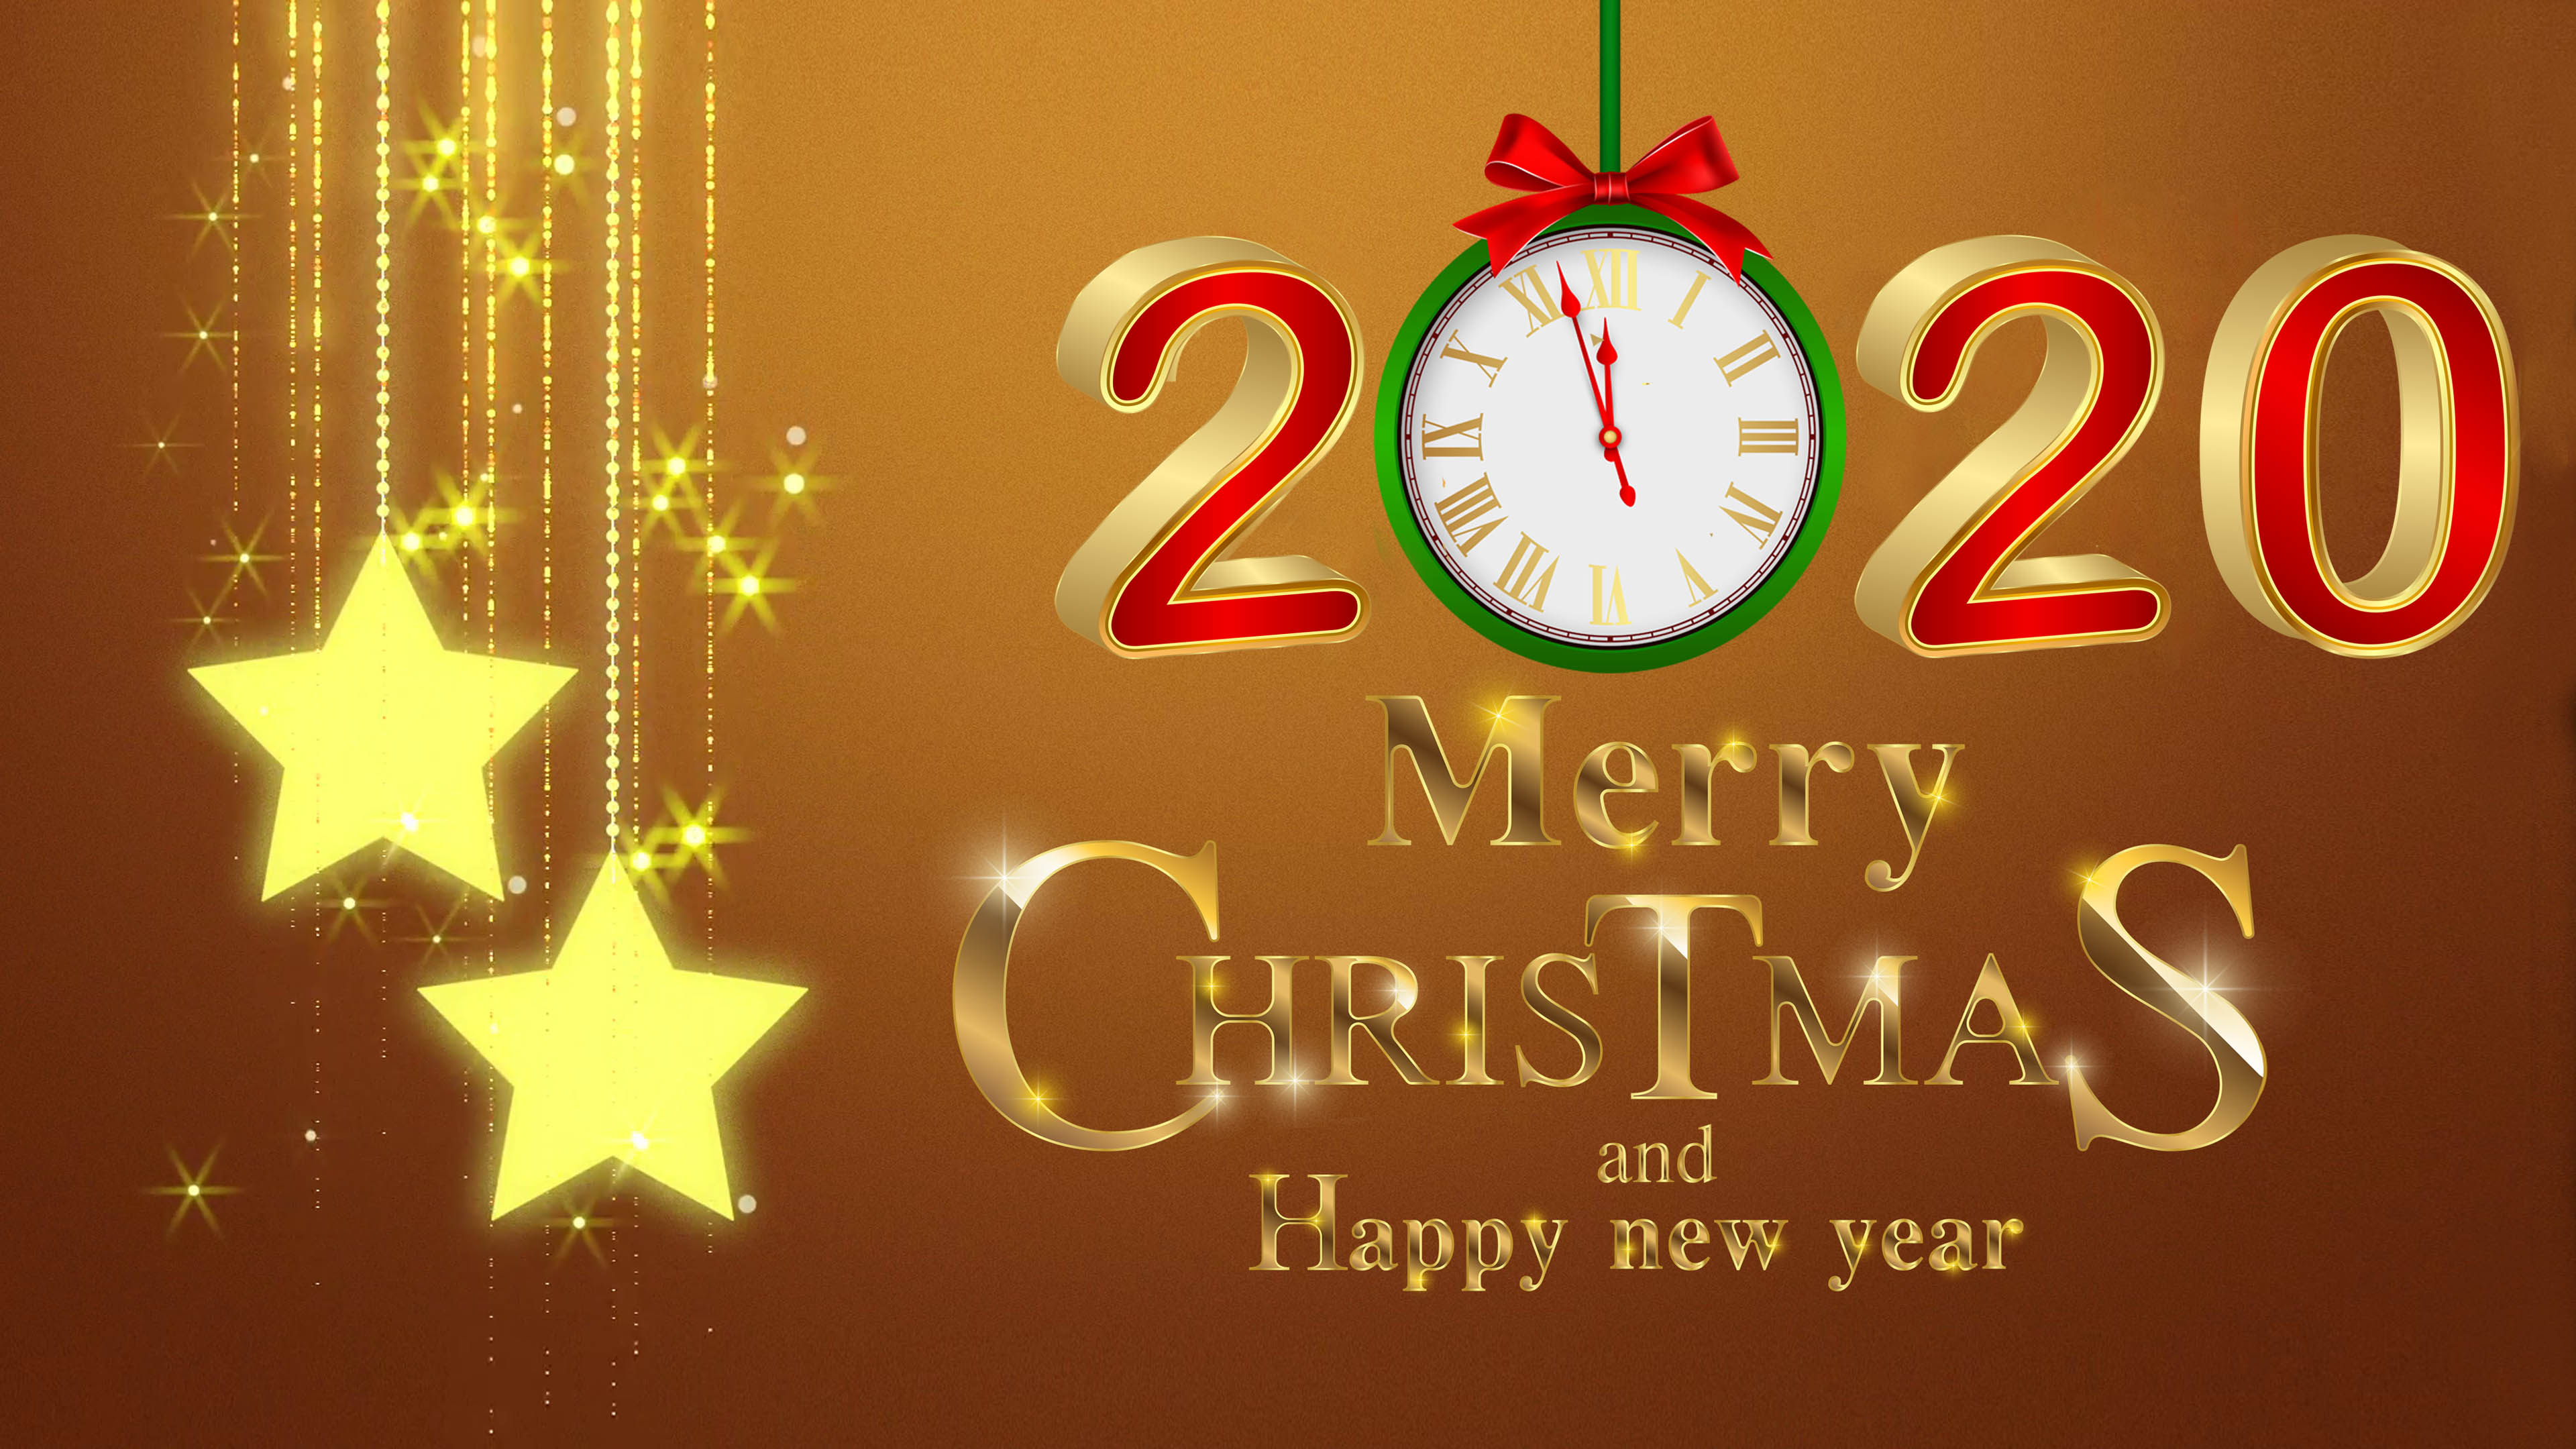 Merry Christmas And Happy New Year 2020 Gold 4k Ultra Hd Desktop 3840x2160